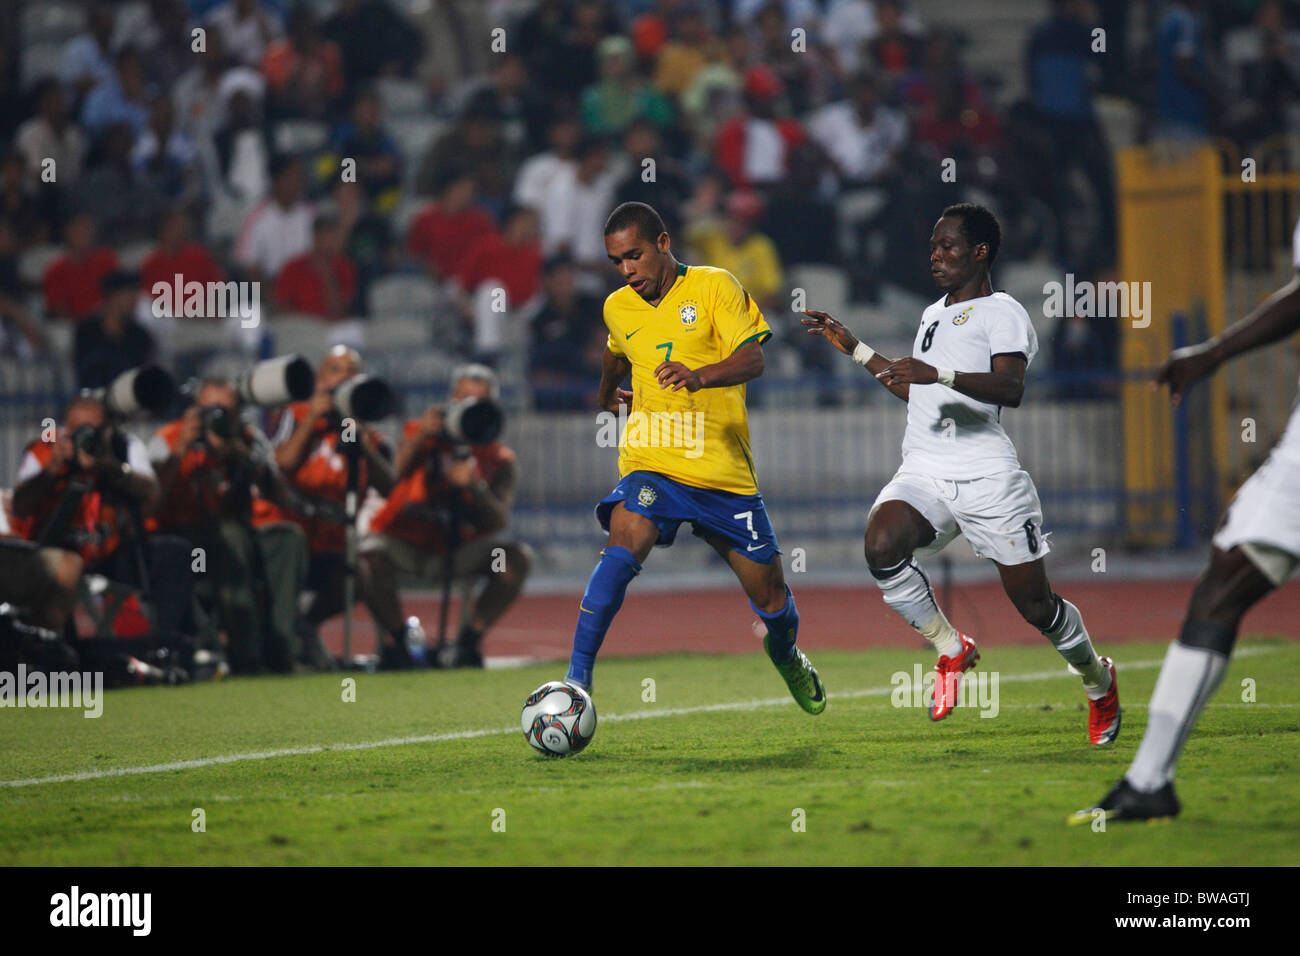 Alex Teixeira of Brazil (7) drives the ball against Ghana during the FIFA U-20 World Cup final October 16, 2009 - Stock Image